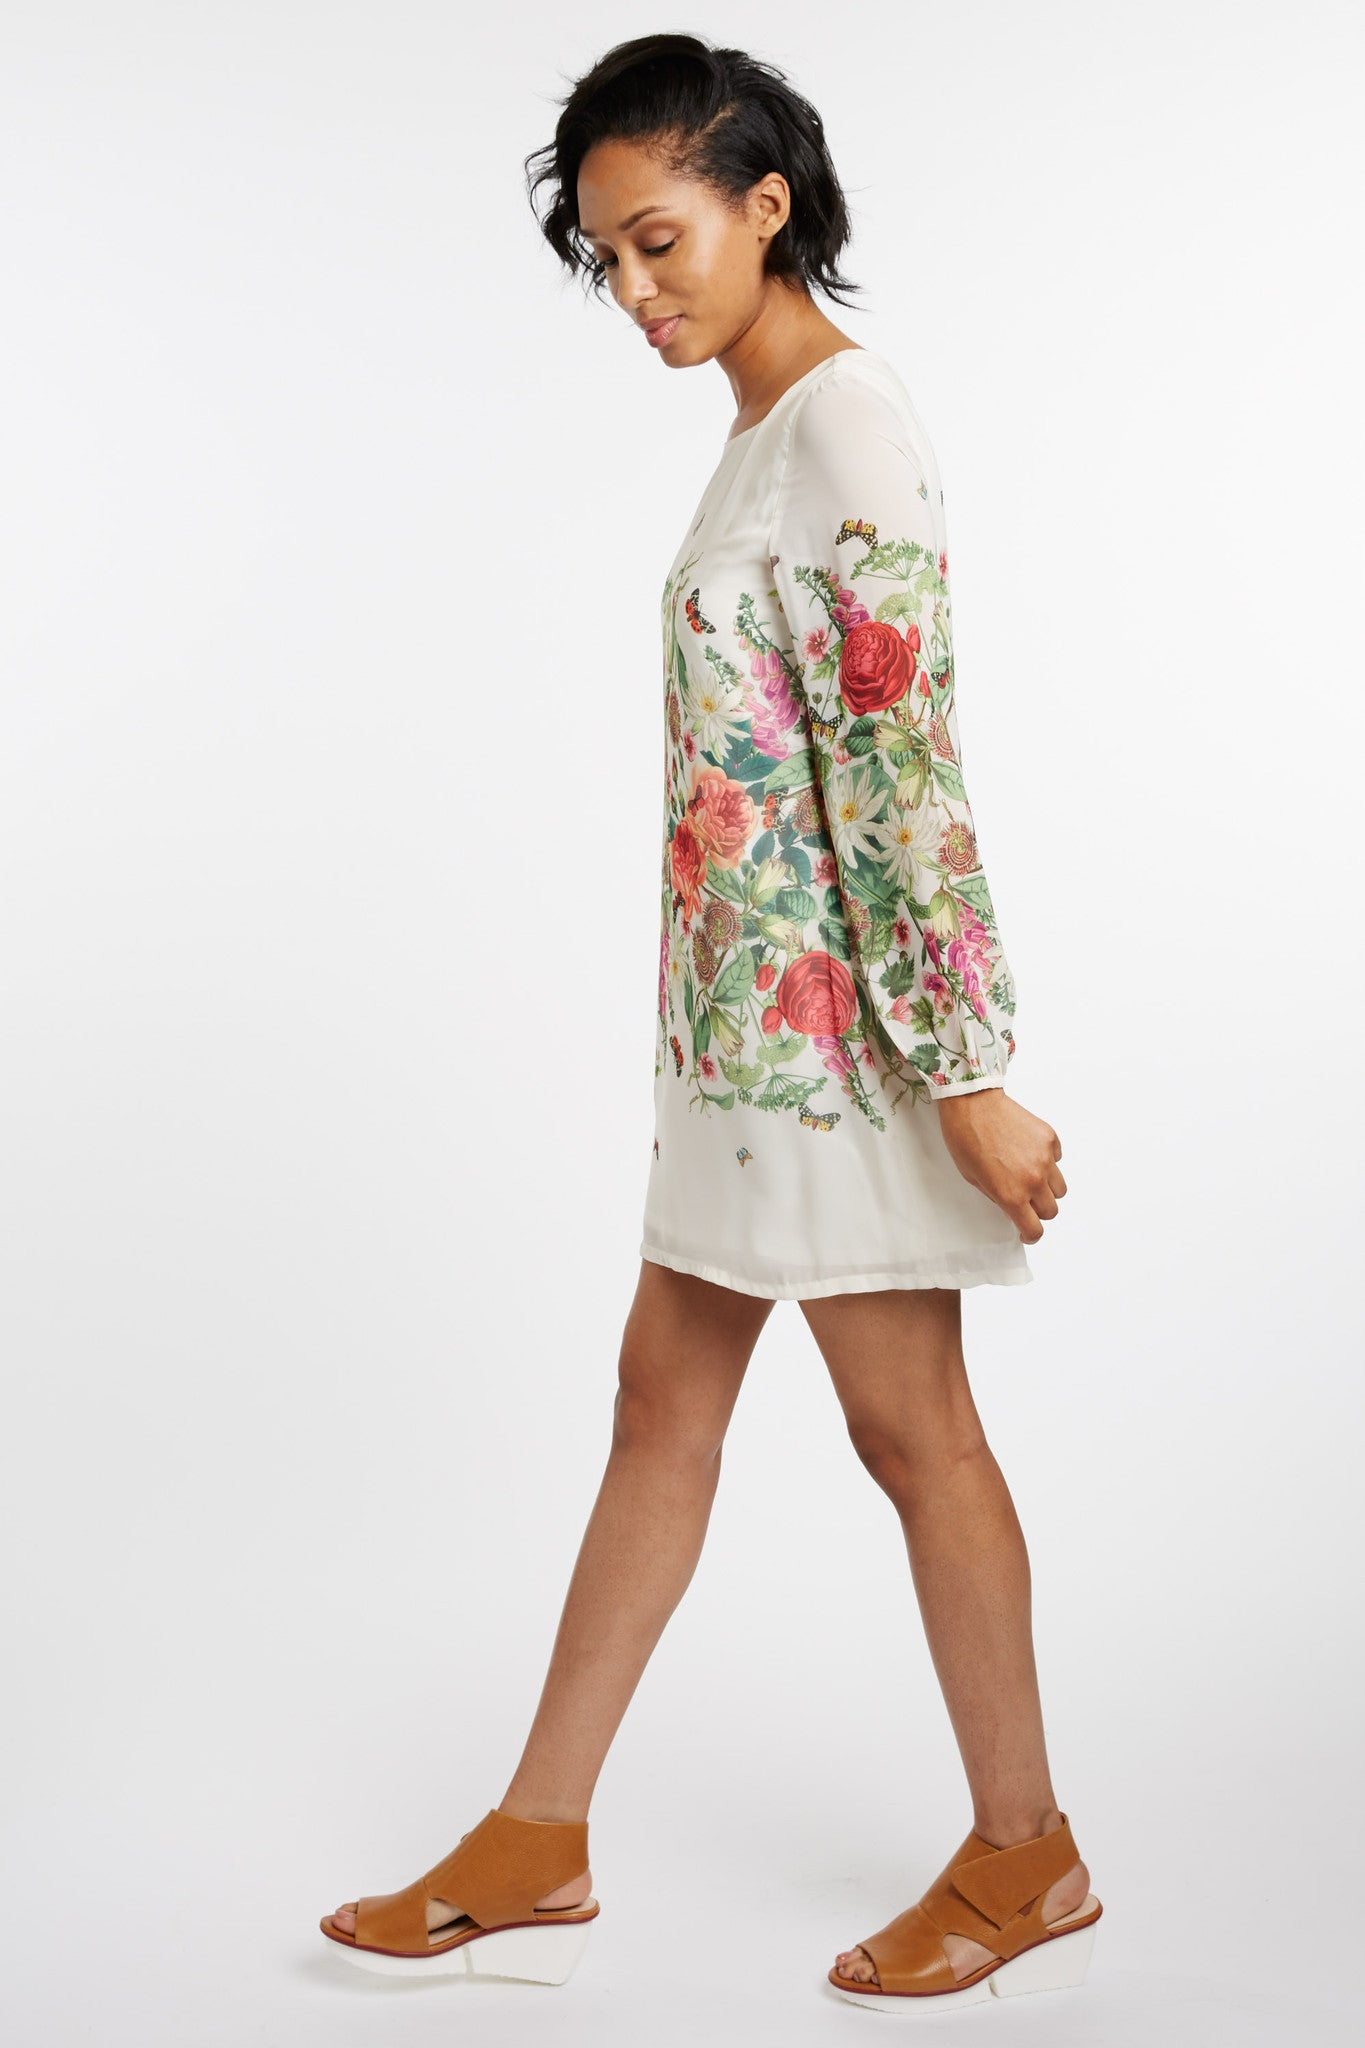 Vicente Spring Floral Dress by Yumi